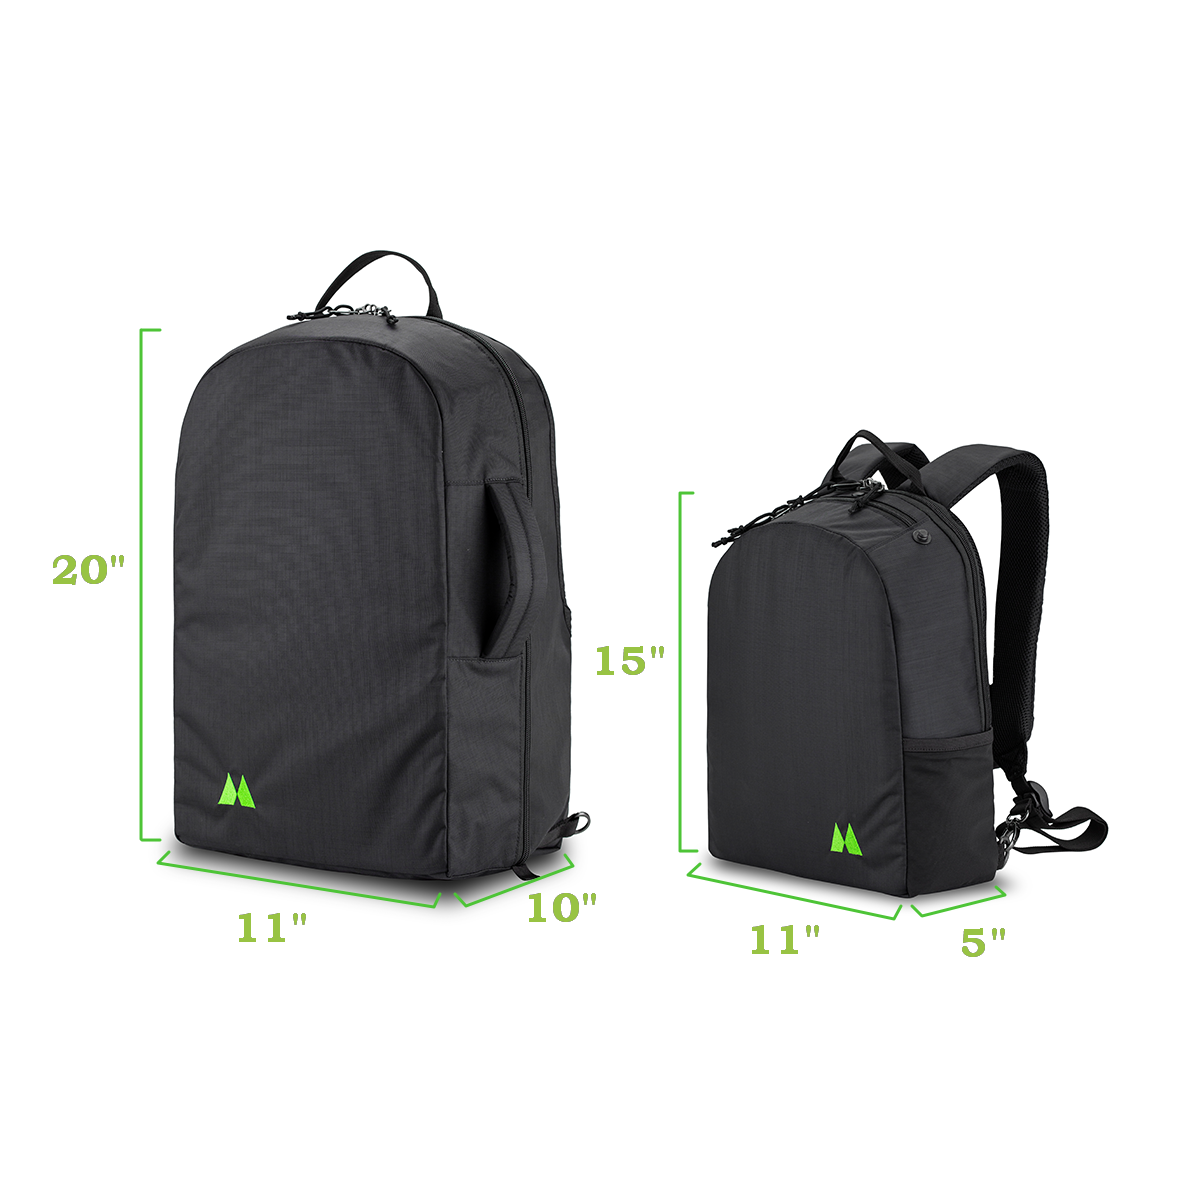 travel pack and day pack dimensiosn